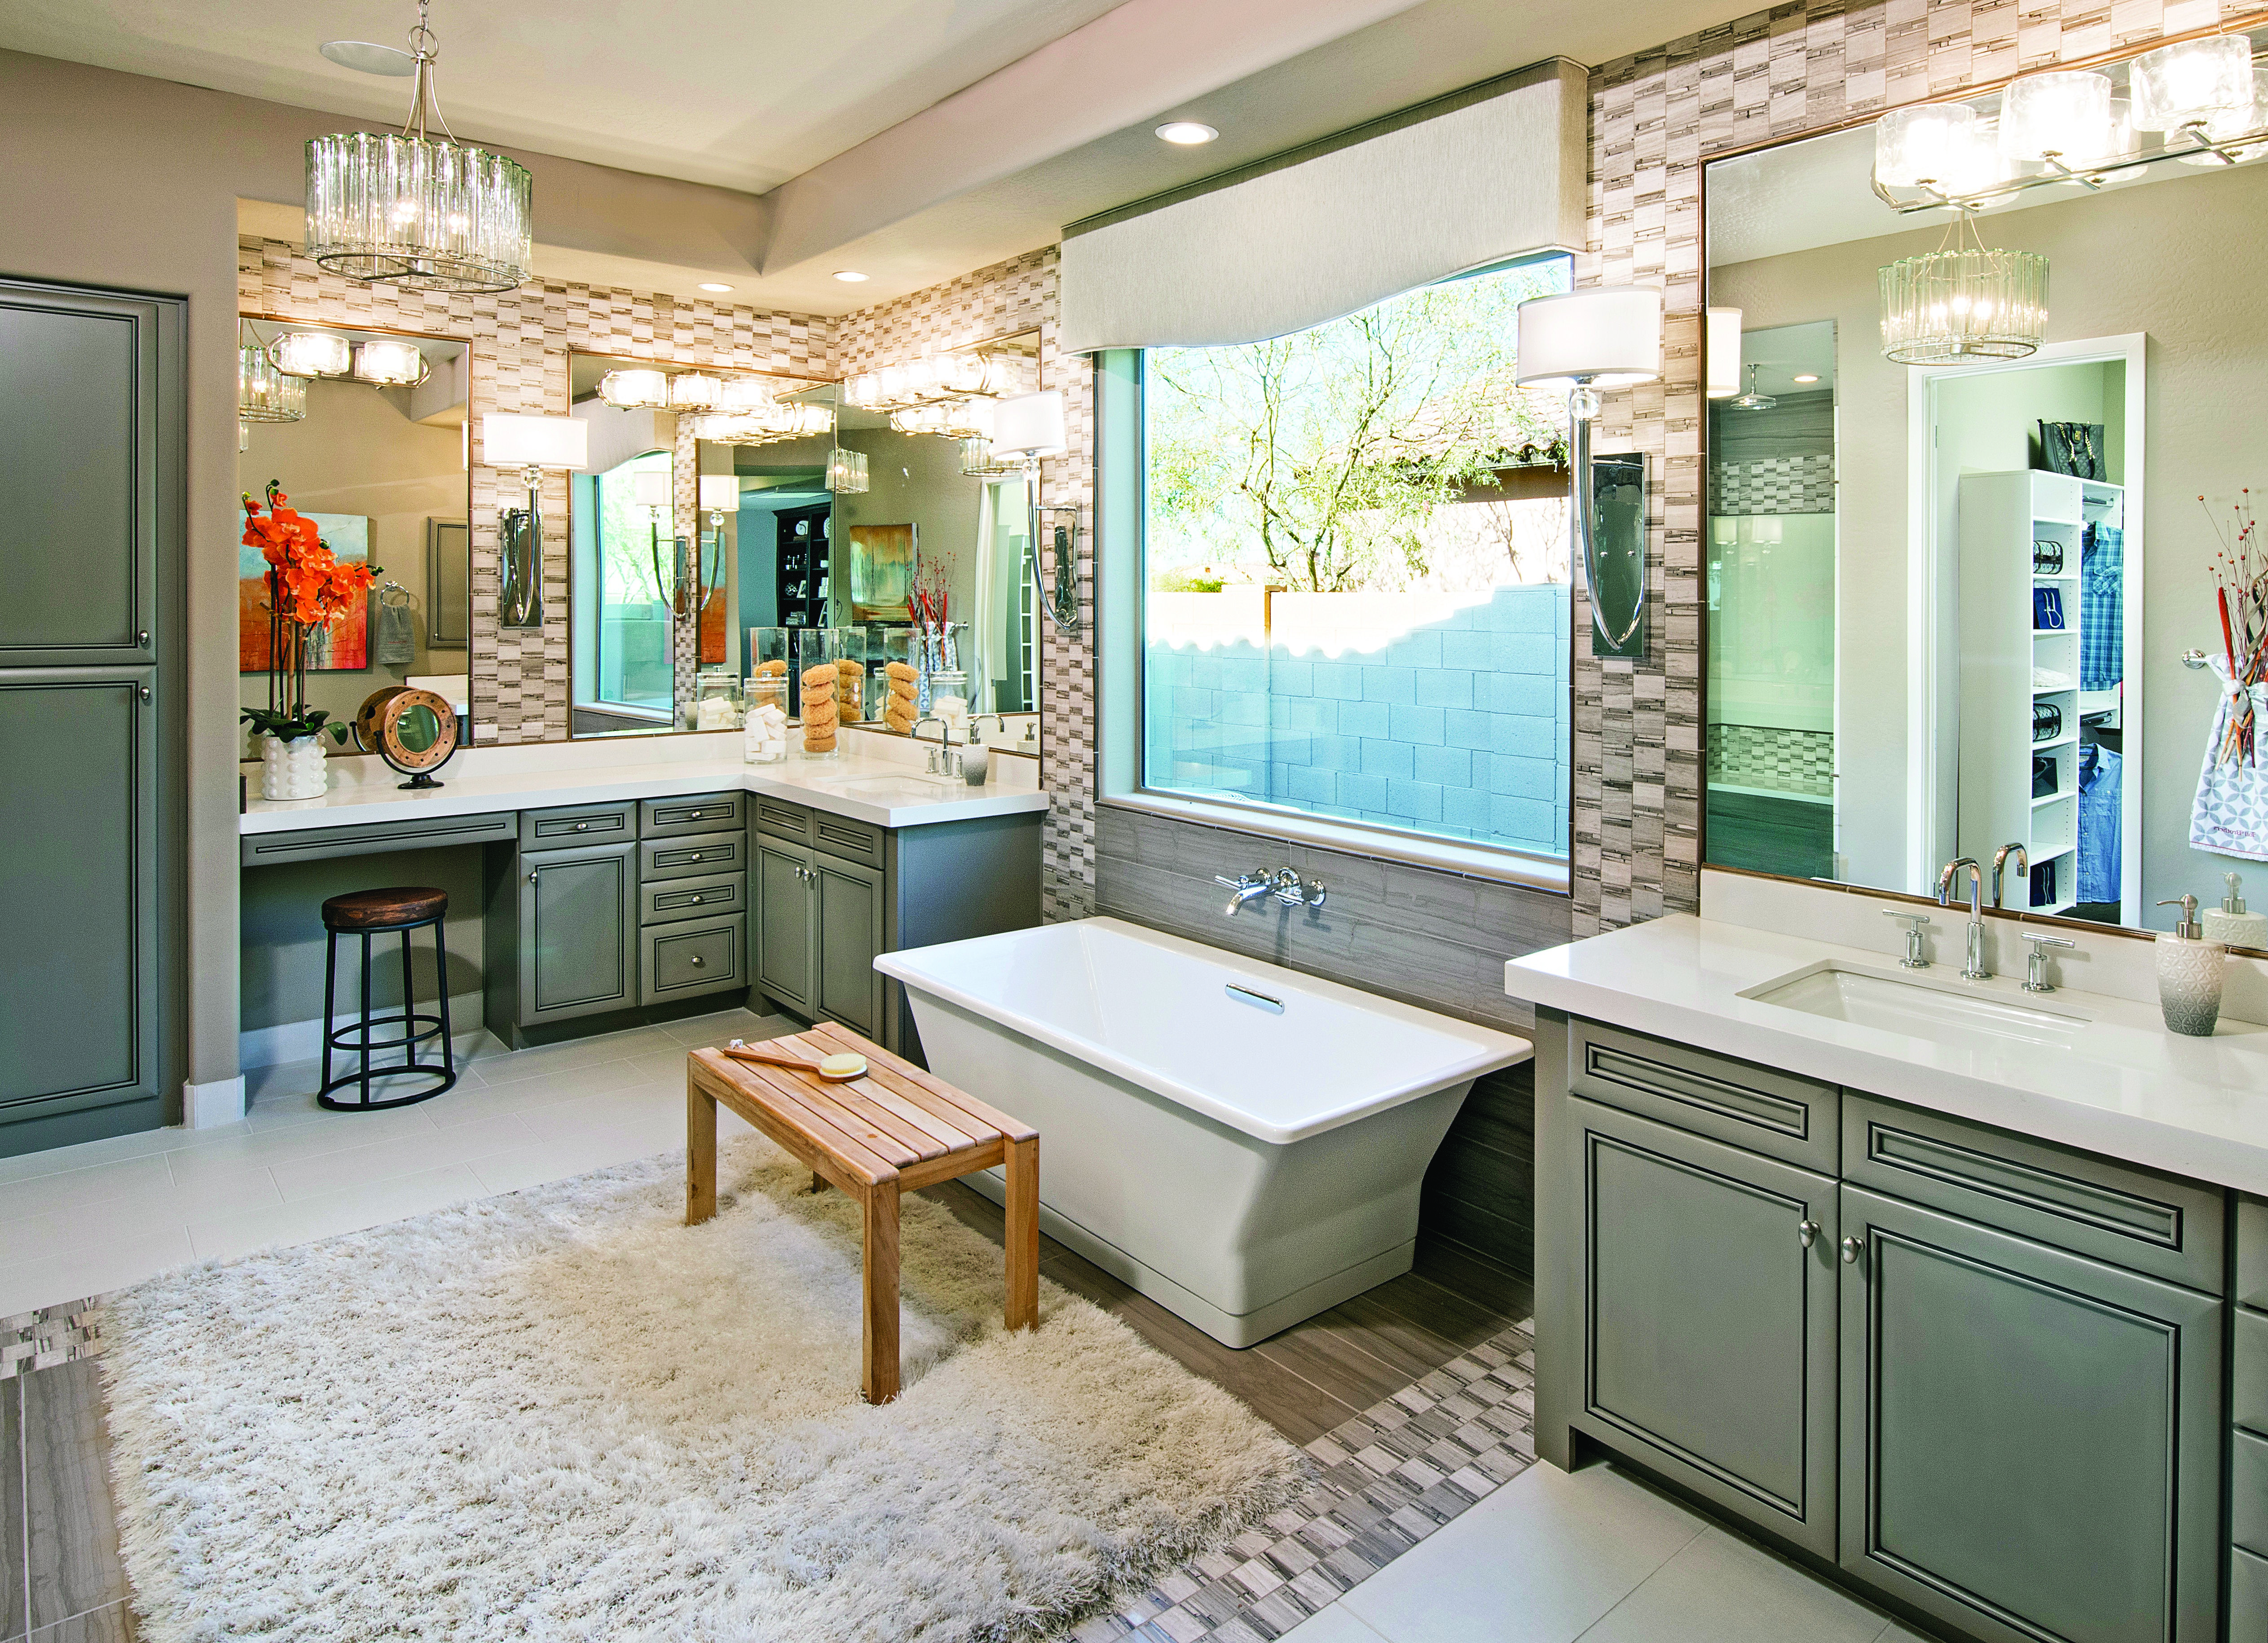 Arizona Luxury New Homes For Sale By Toll Brothers Stand Alone Tub Tubs For Sale New Homes